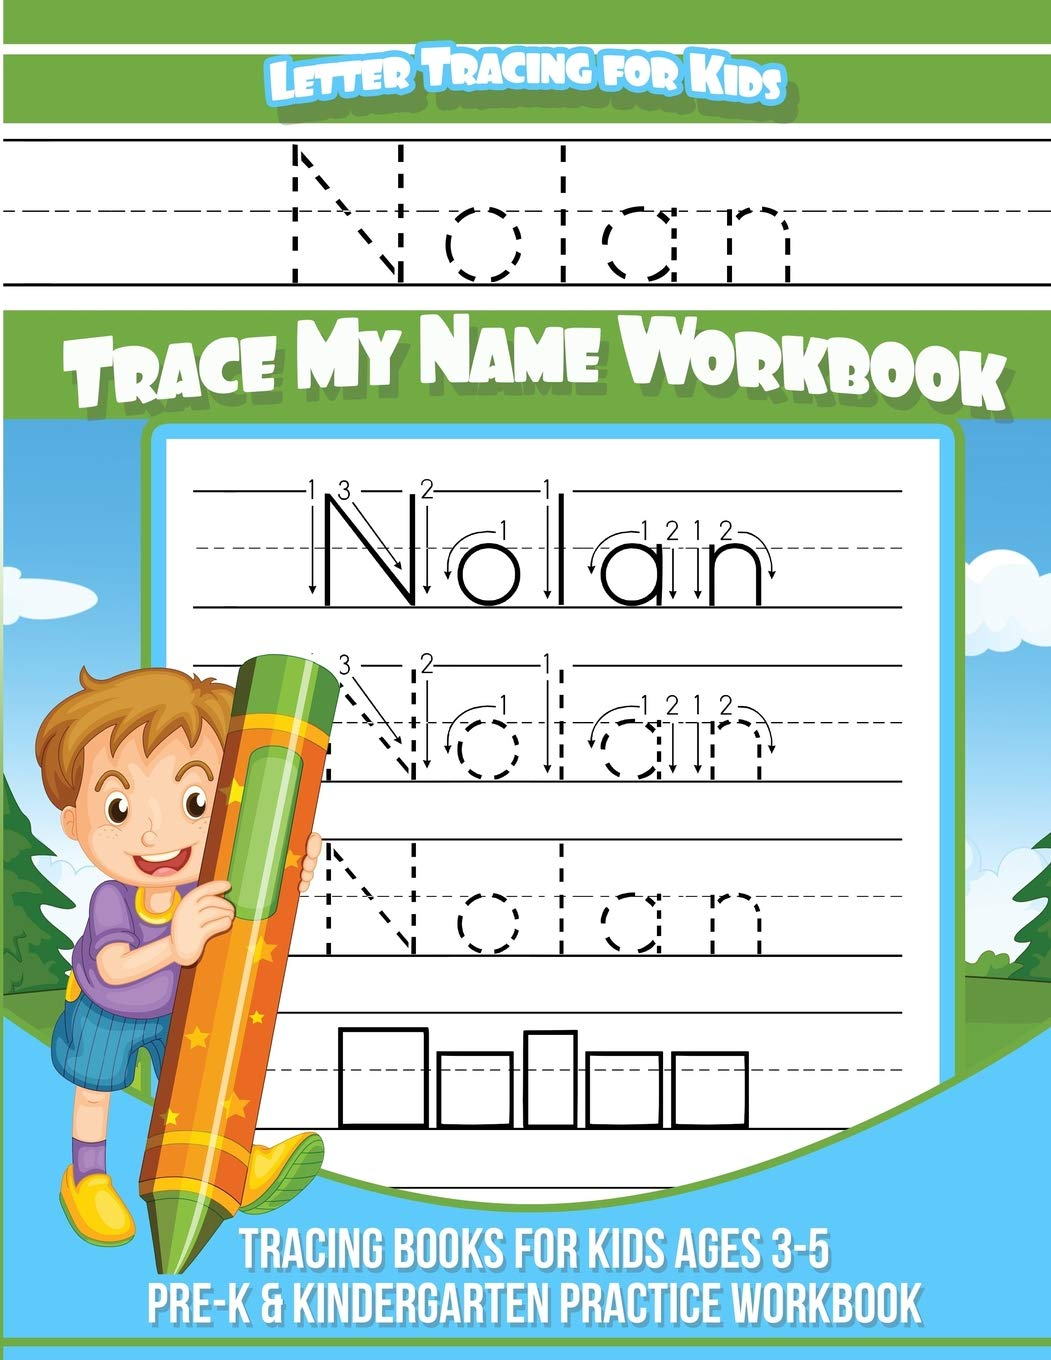 Nolan Letter Tracing for Kids Trace my Name Workbook: Tracing Books for Kids ages 3 - 5 Pre-K & Kindergarten Practice Workbook (Personalized Children's Trace Name Books) (Volume 1)